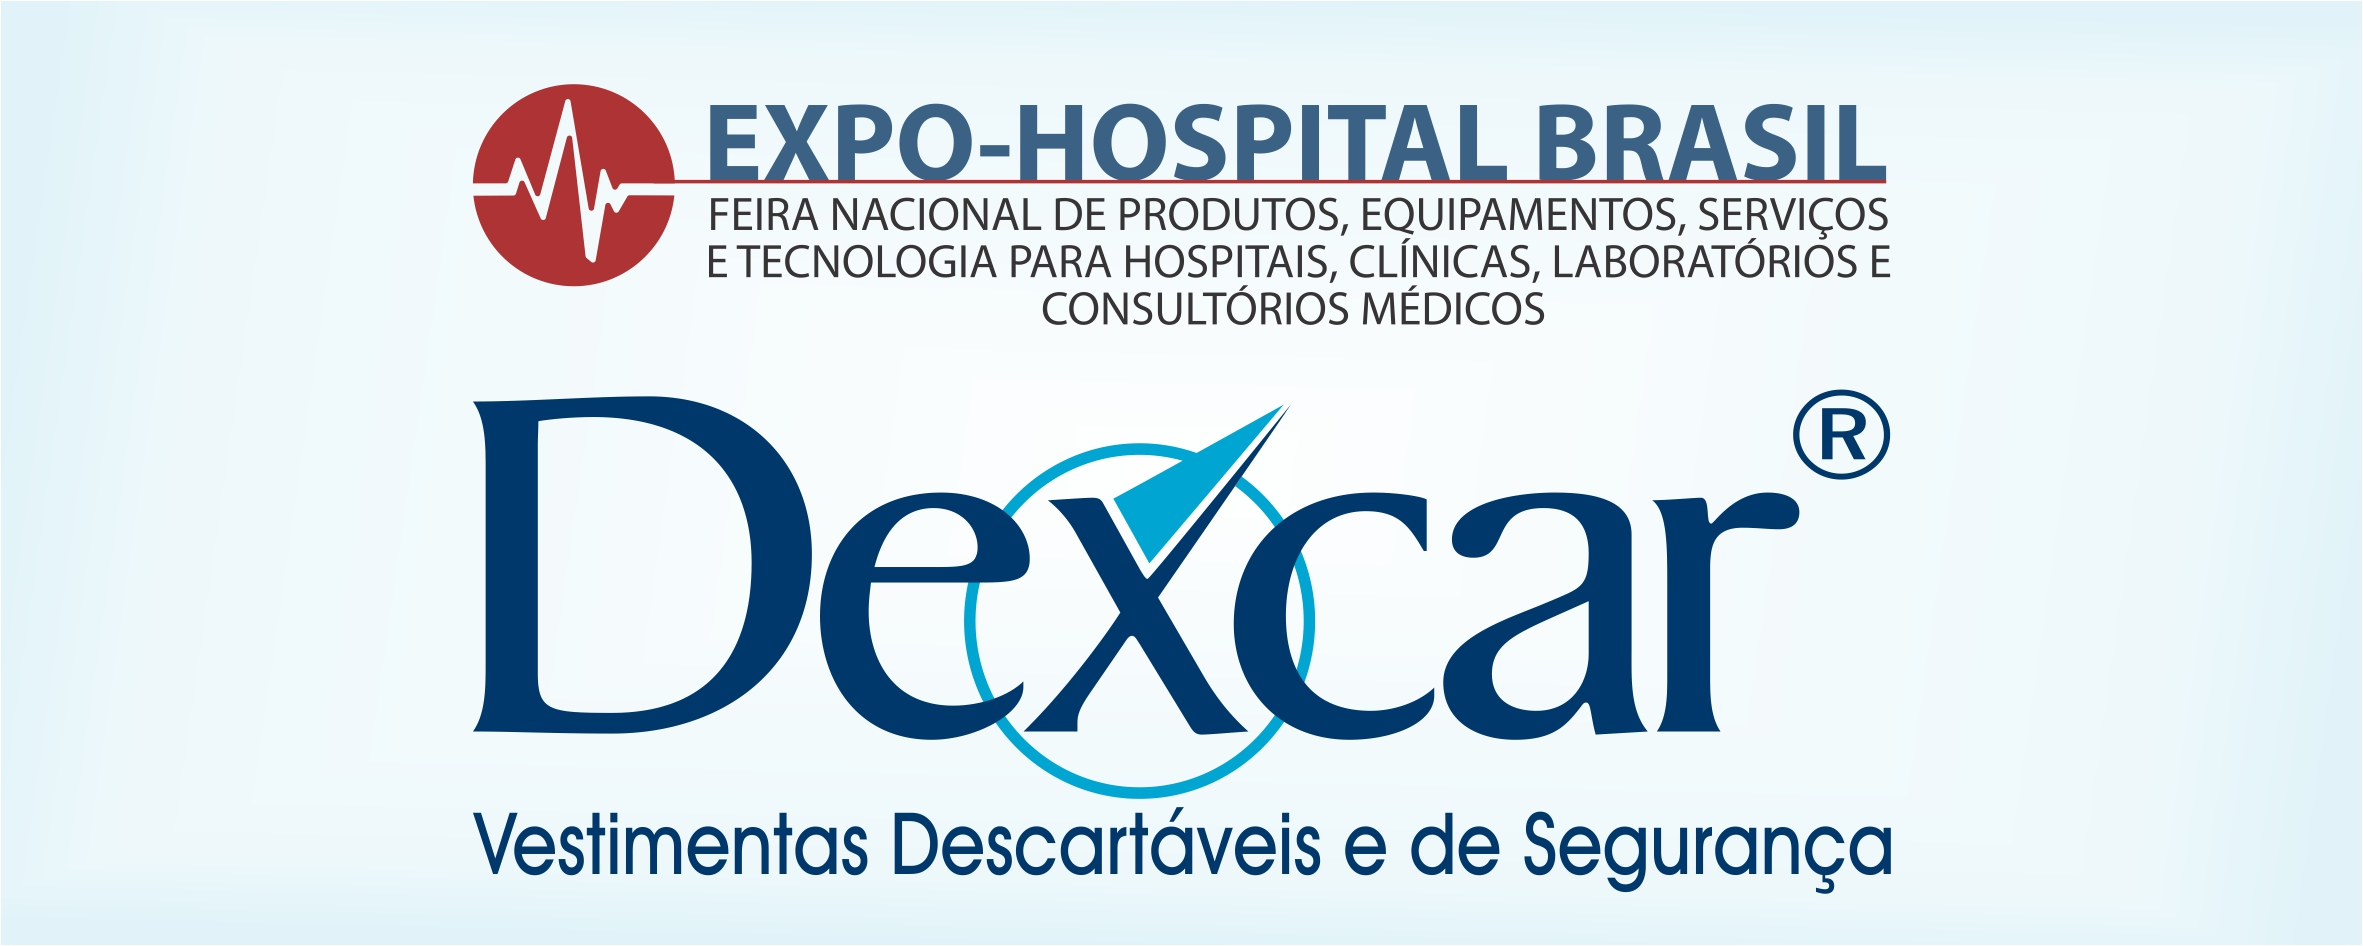 Dexcar na Expo Hospital Brasil (MG) 2017